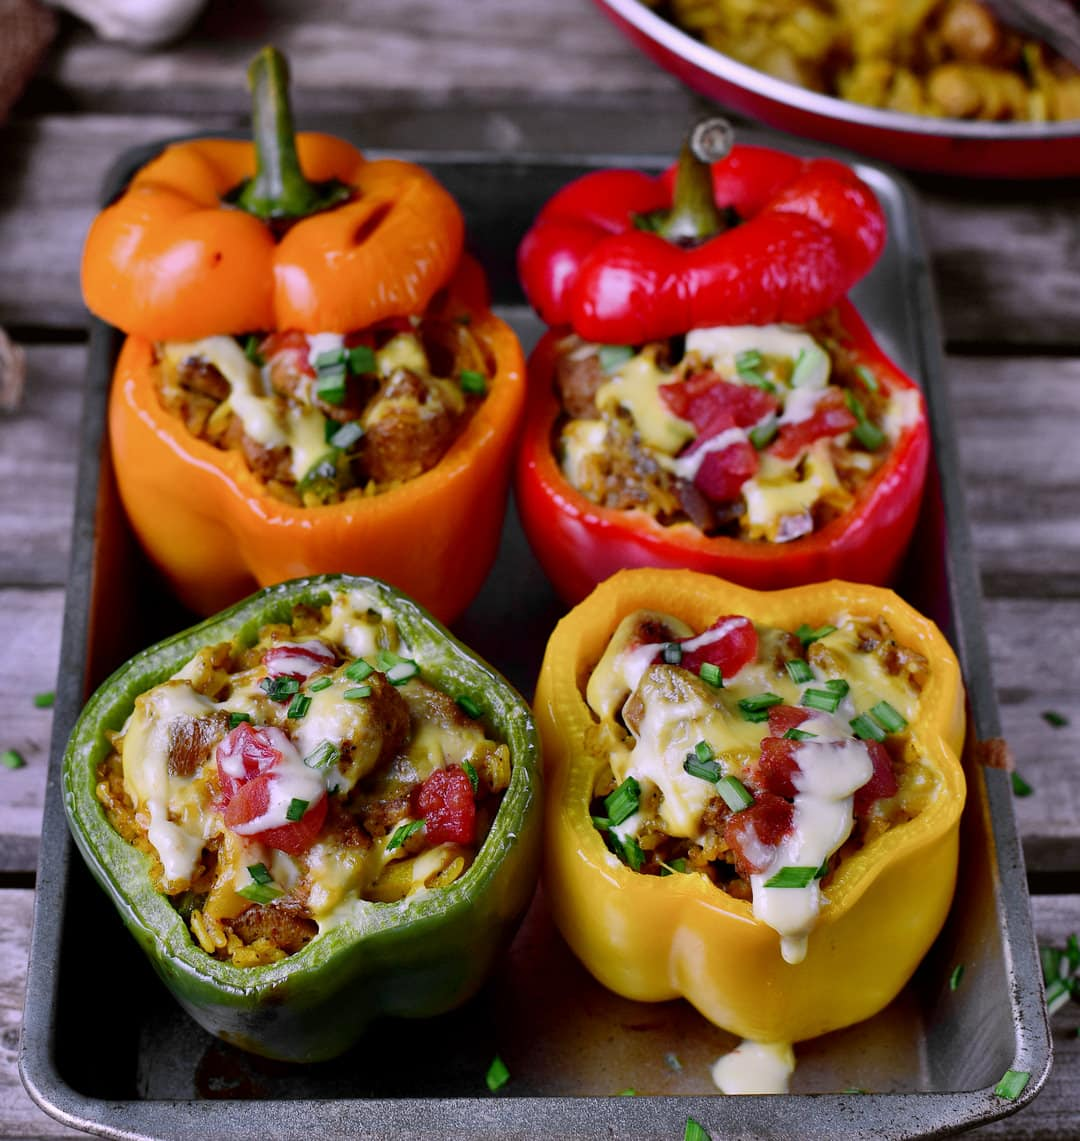 4 vegan stuffed bell peppers with plant-based cheese, rice, textured soy protein and healthy veggies